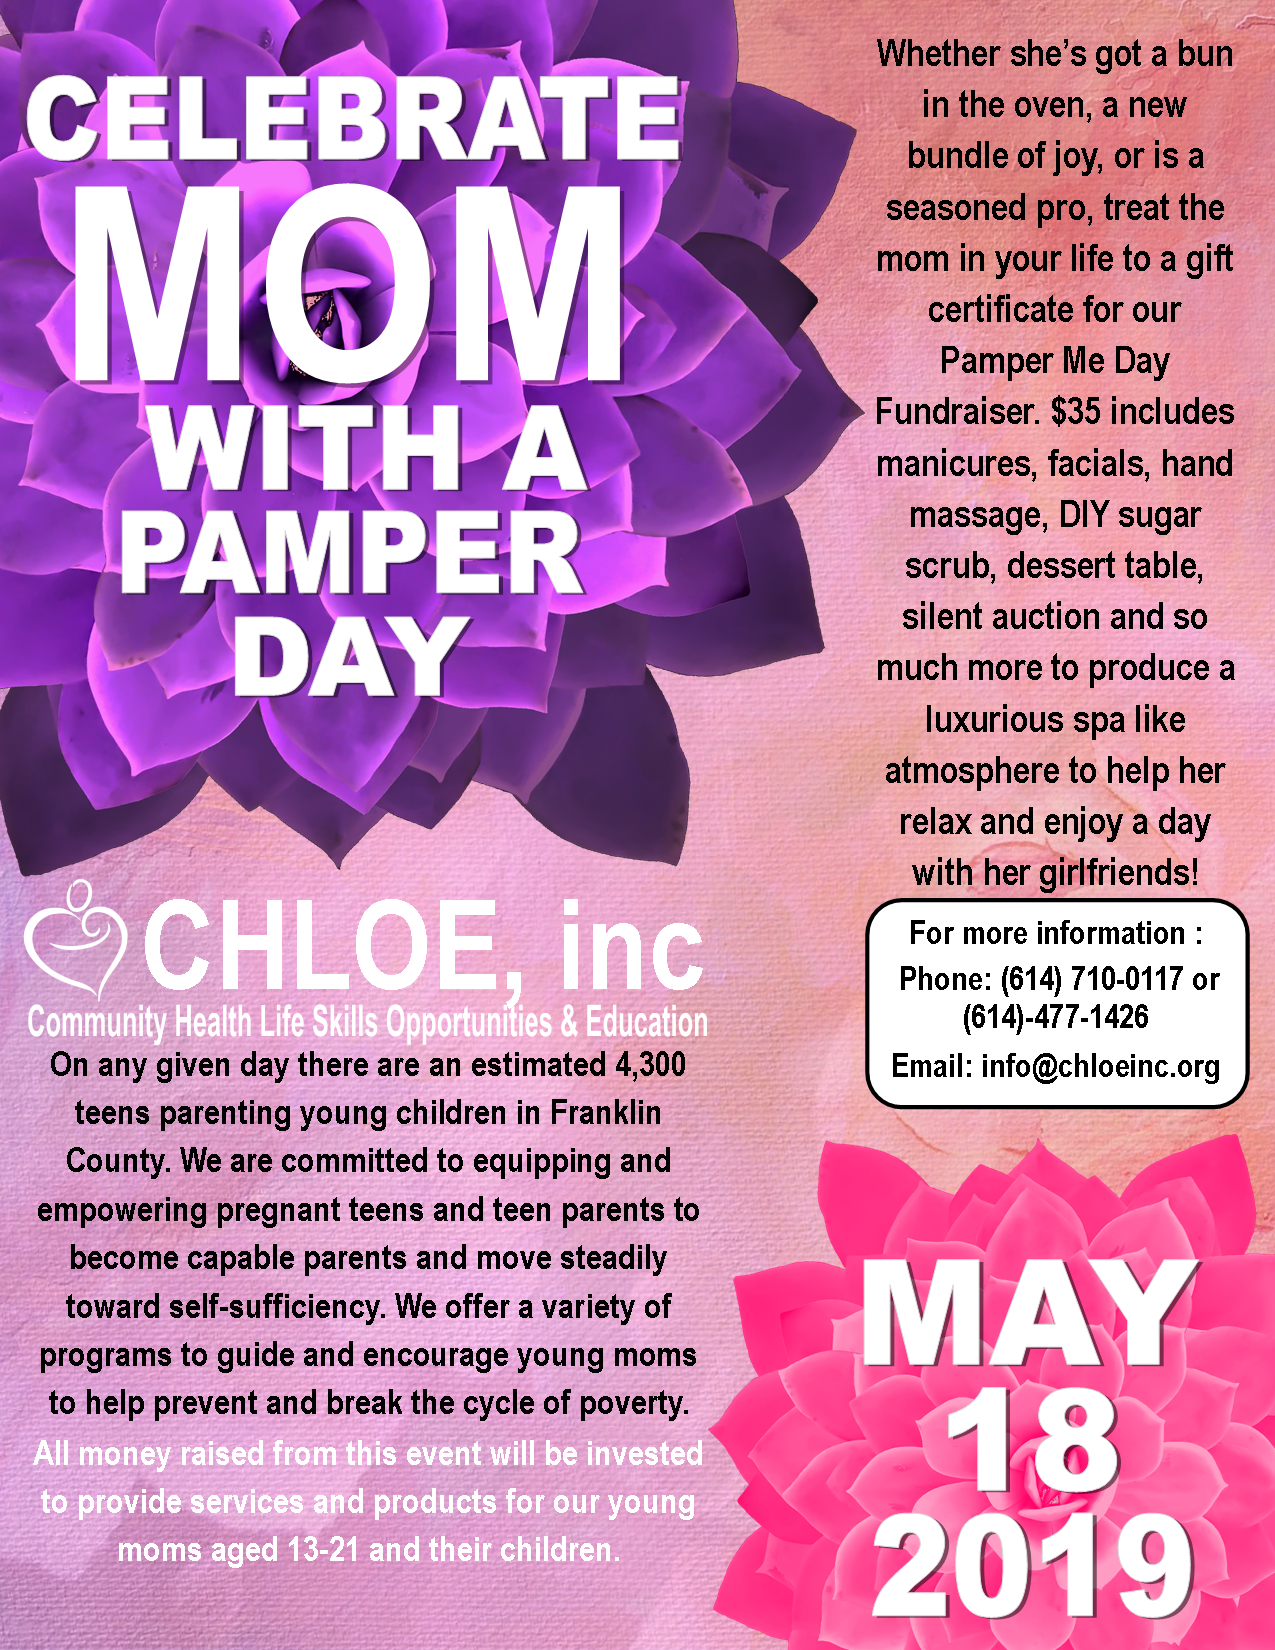 Pamper Me Day Fundraiser - May 18, 201911 AM-1:30 PMCreekside Conference & Event Center101 Mill Street #300Gahanna, OH 43230To buy tickets, visit https://www.eventbrite.com/e/pamper-me-day-fundraiser-tickets-58910748635..